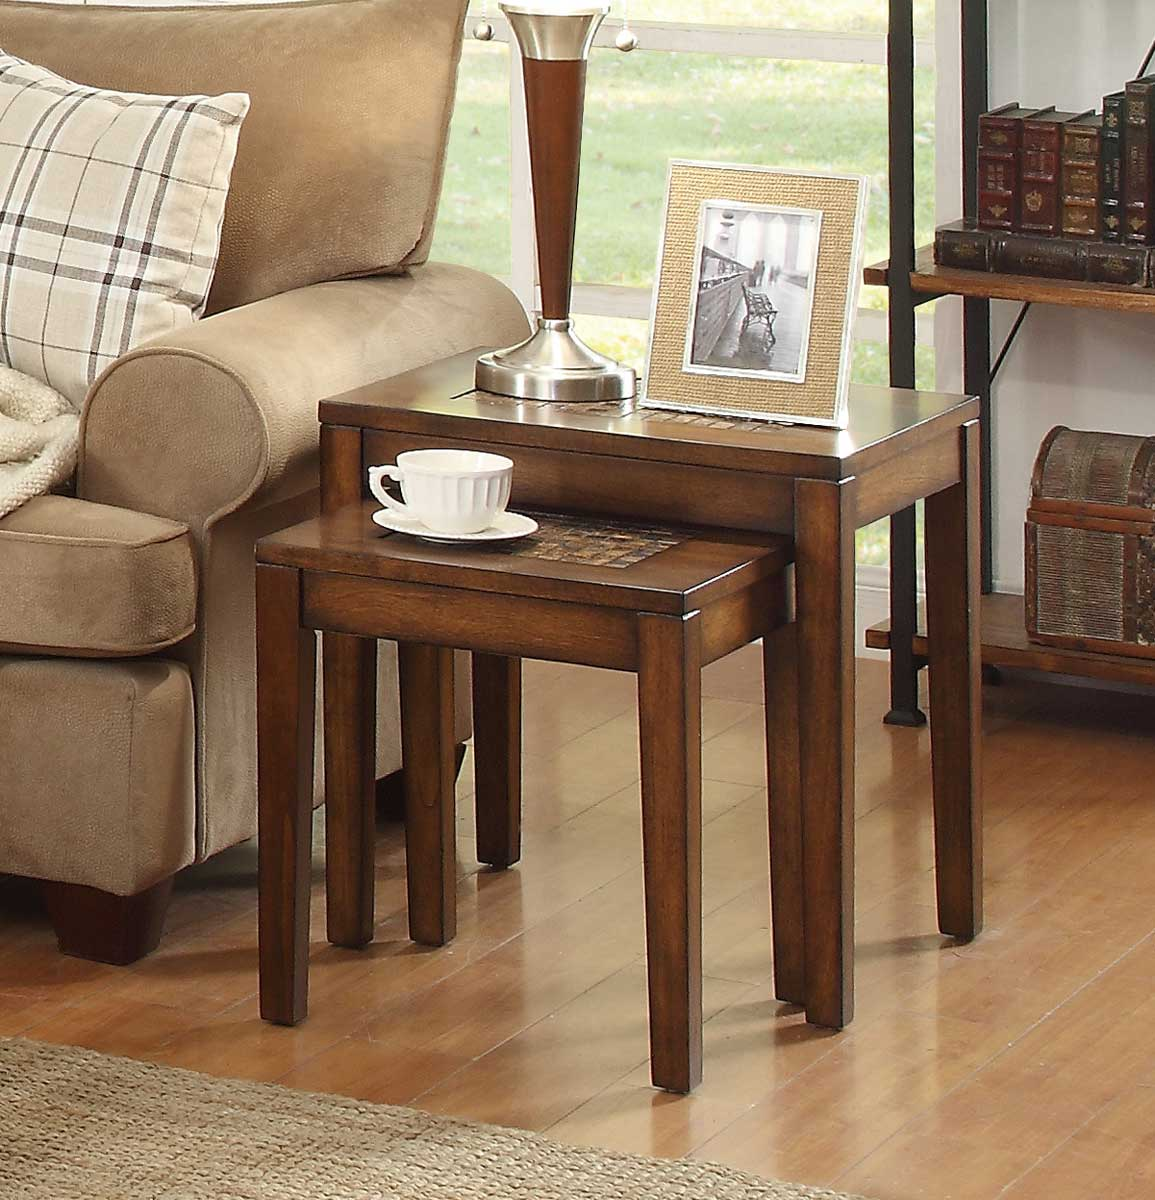 Homelegance Antoni Nesting Tables - Warm Brown Cherry